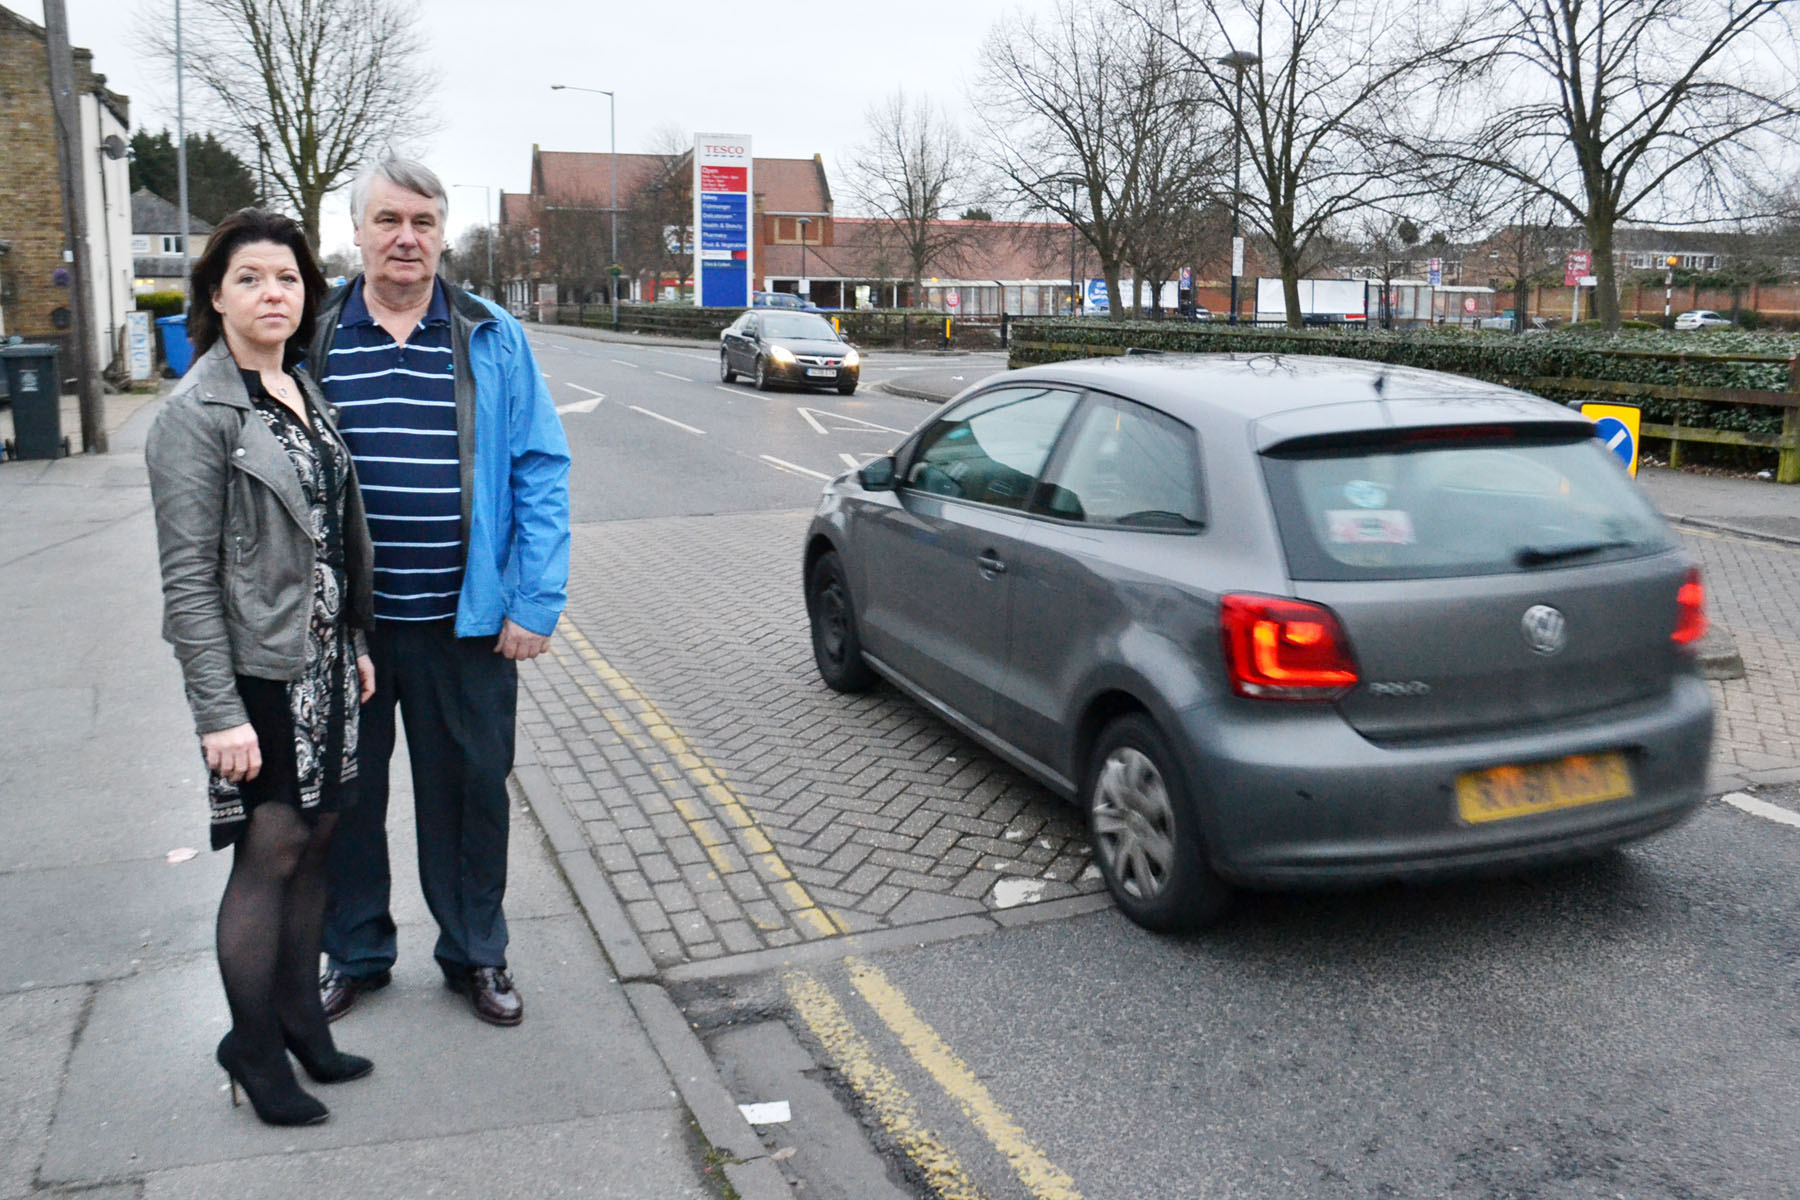 Councillors Phill Bicknell and Nicola Pryer survey the Dedworth road scene